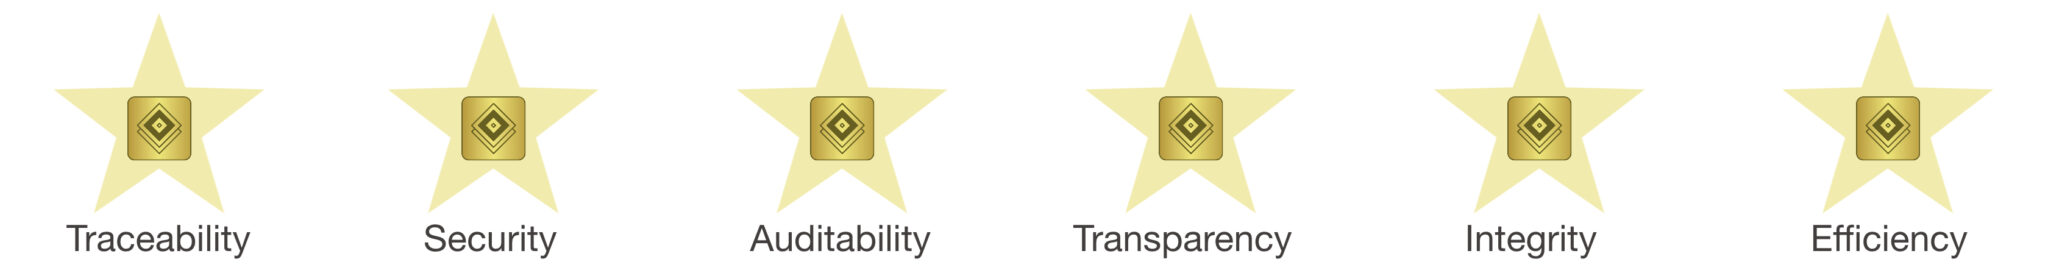 SDLT Trace platform provides traceability, security, auditability, transparency, integrity and afficiency